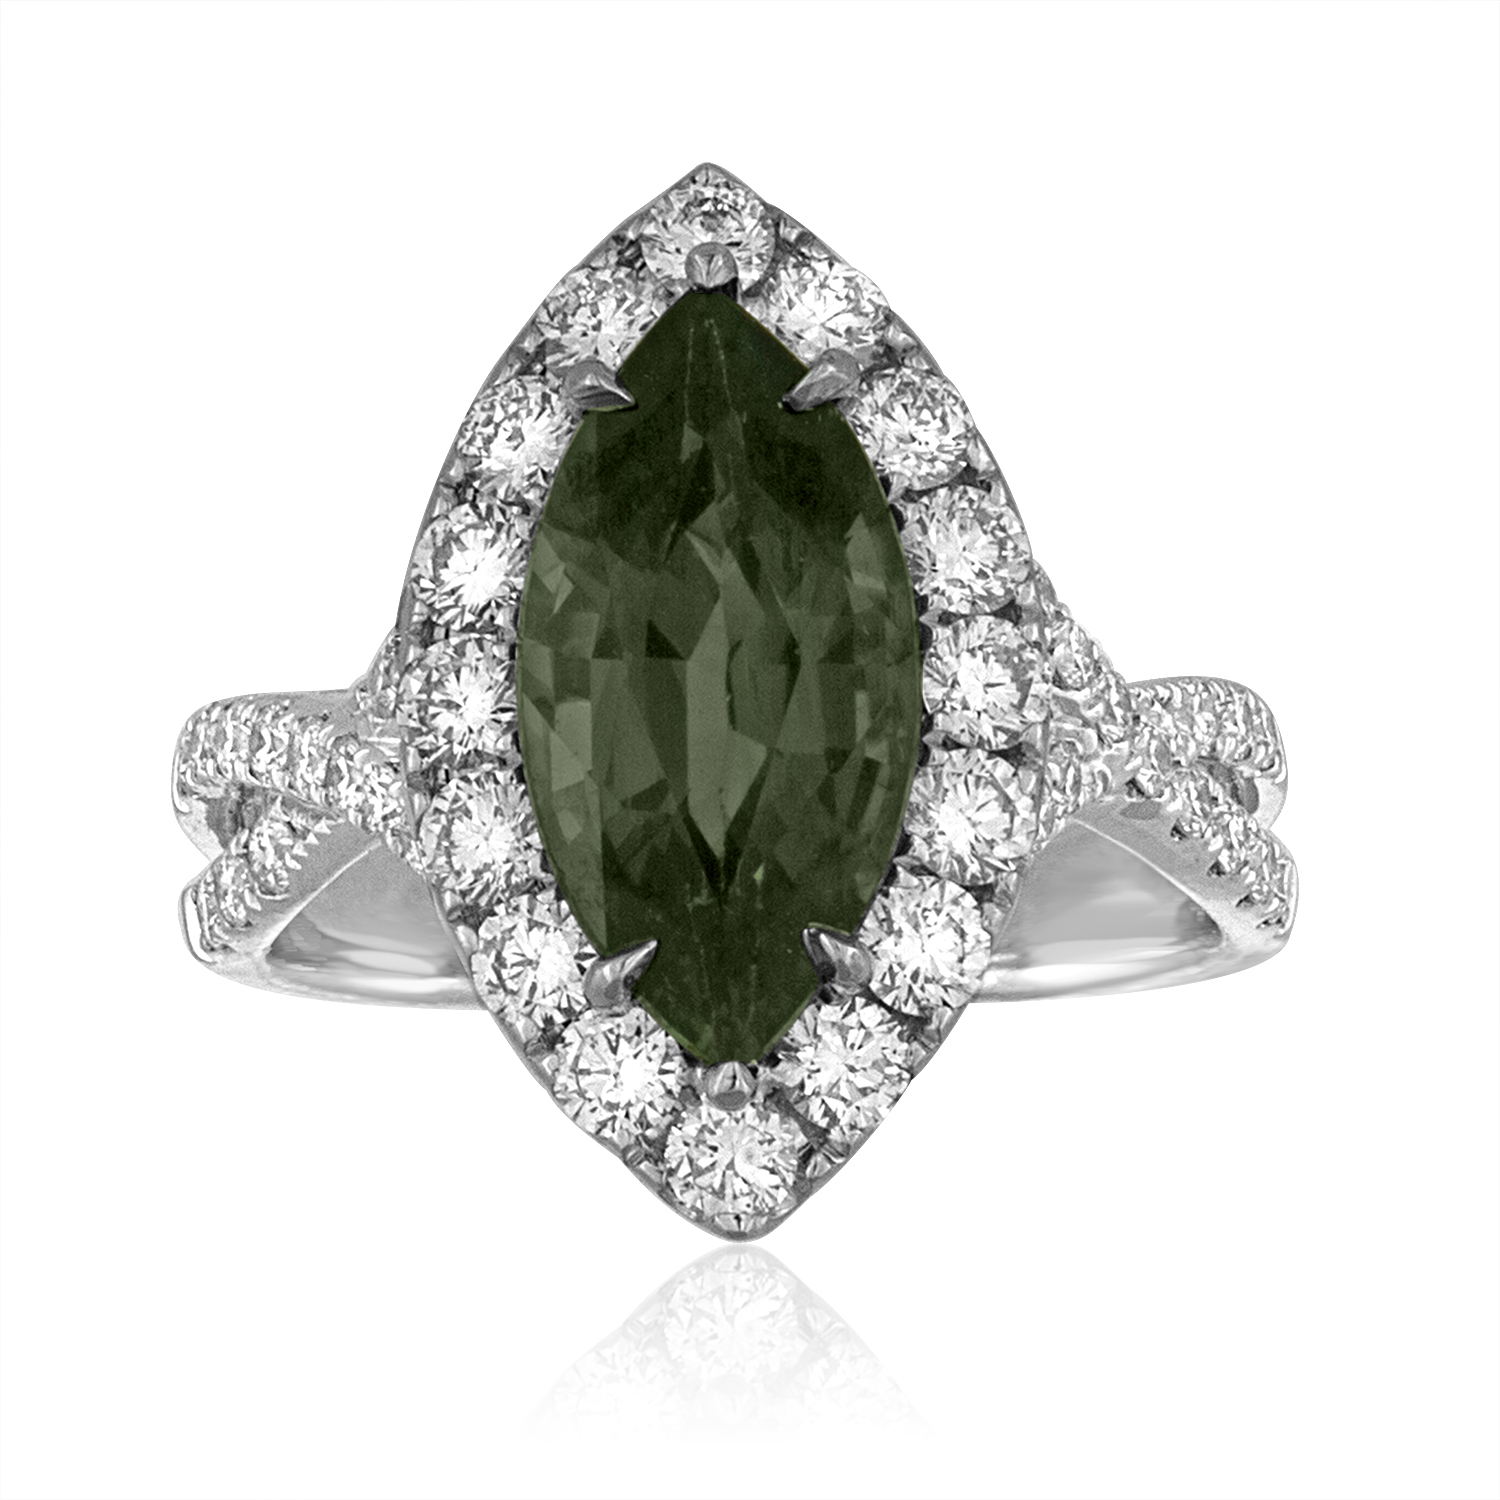 emerald unique micro products one of a kind platinum octagonal diamonds ring with diamond copy pave jewelers af green and